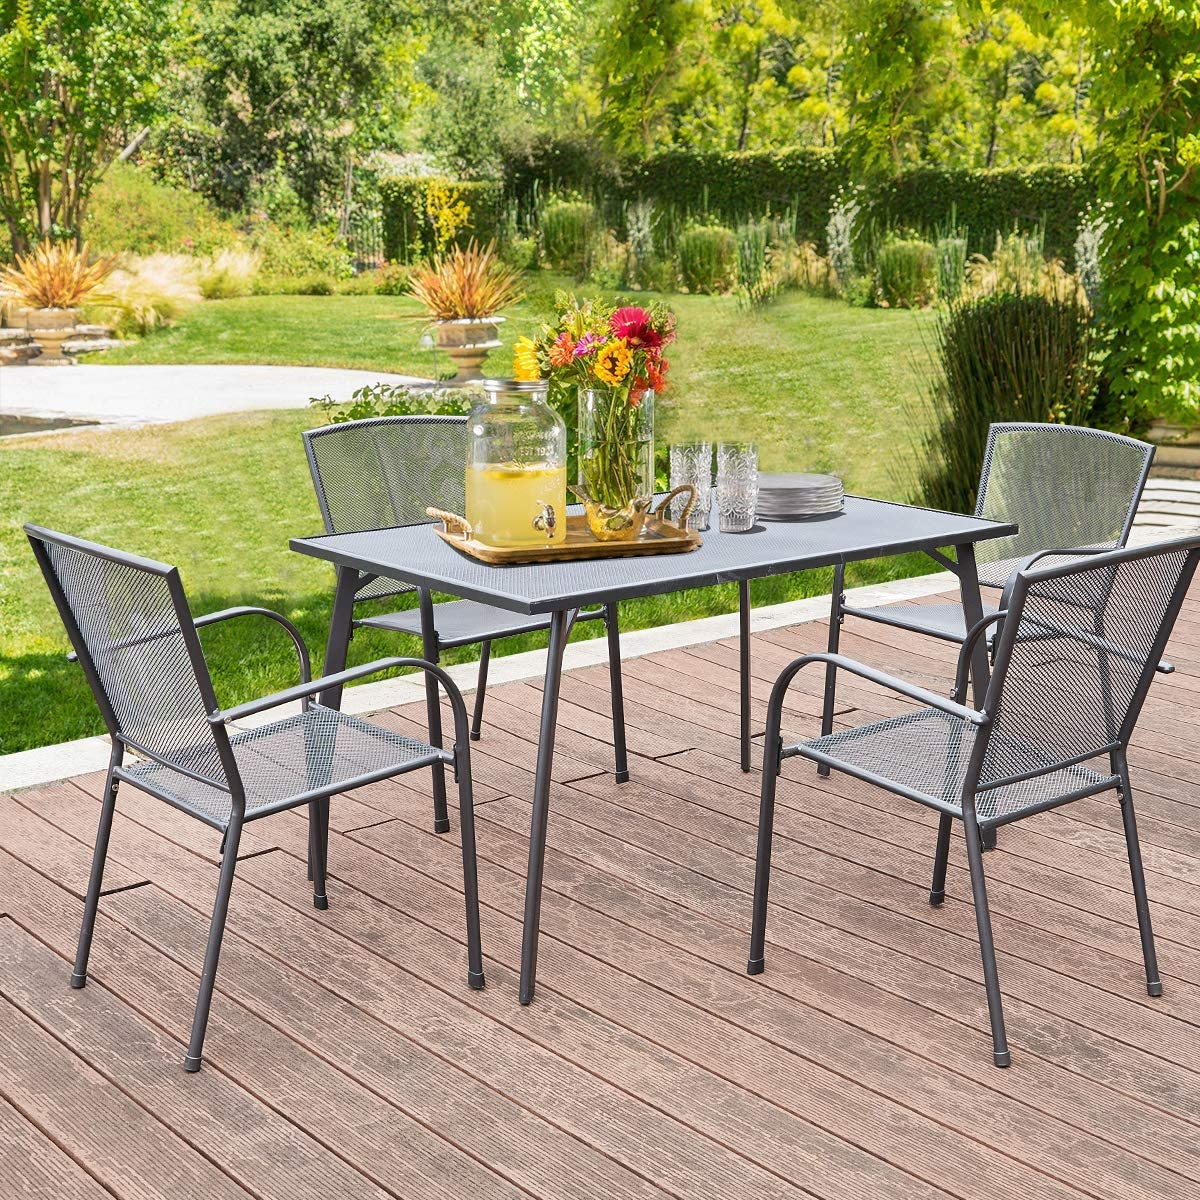 AECOJOY 10 Piece Metal Outdoor Patio Dining Set, Outdoor Metal Dining Table  Set with Rectangular Table and 10 Stackable Arm Chairs,Patio Dining Bistro  ...